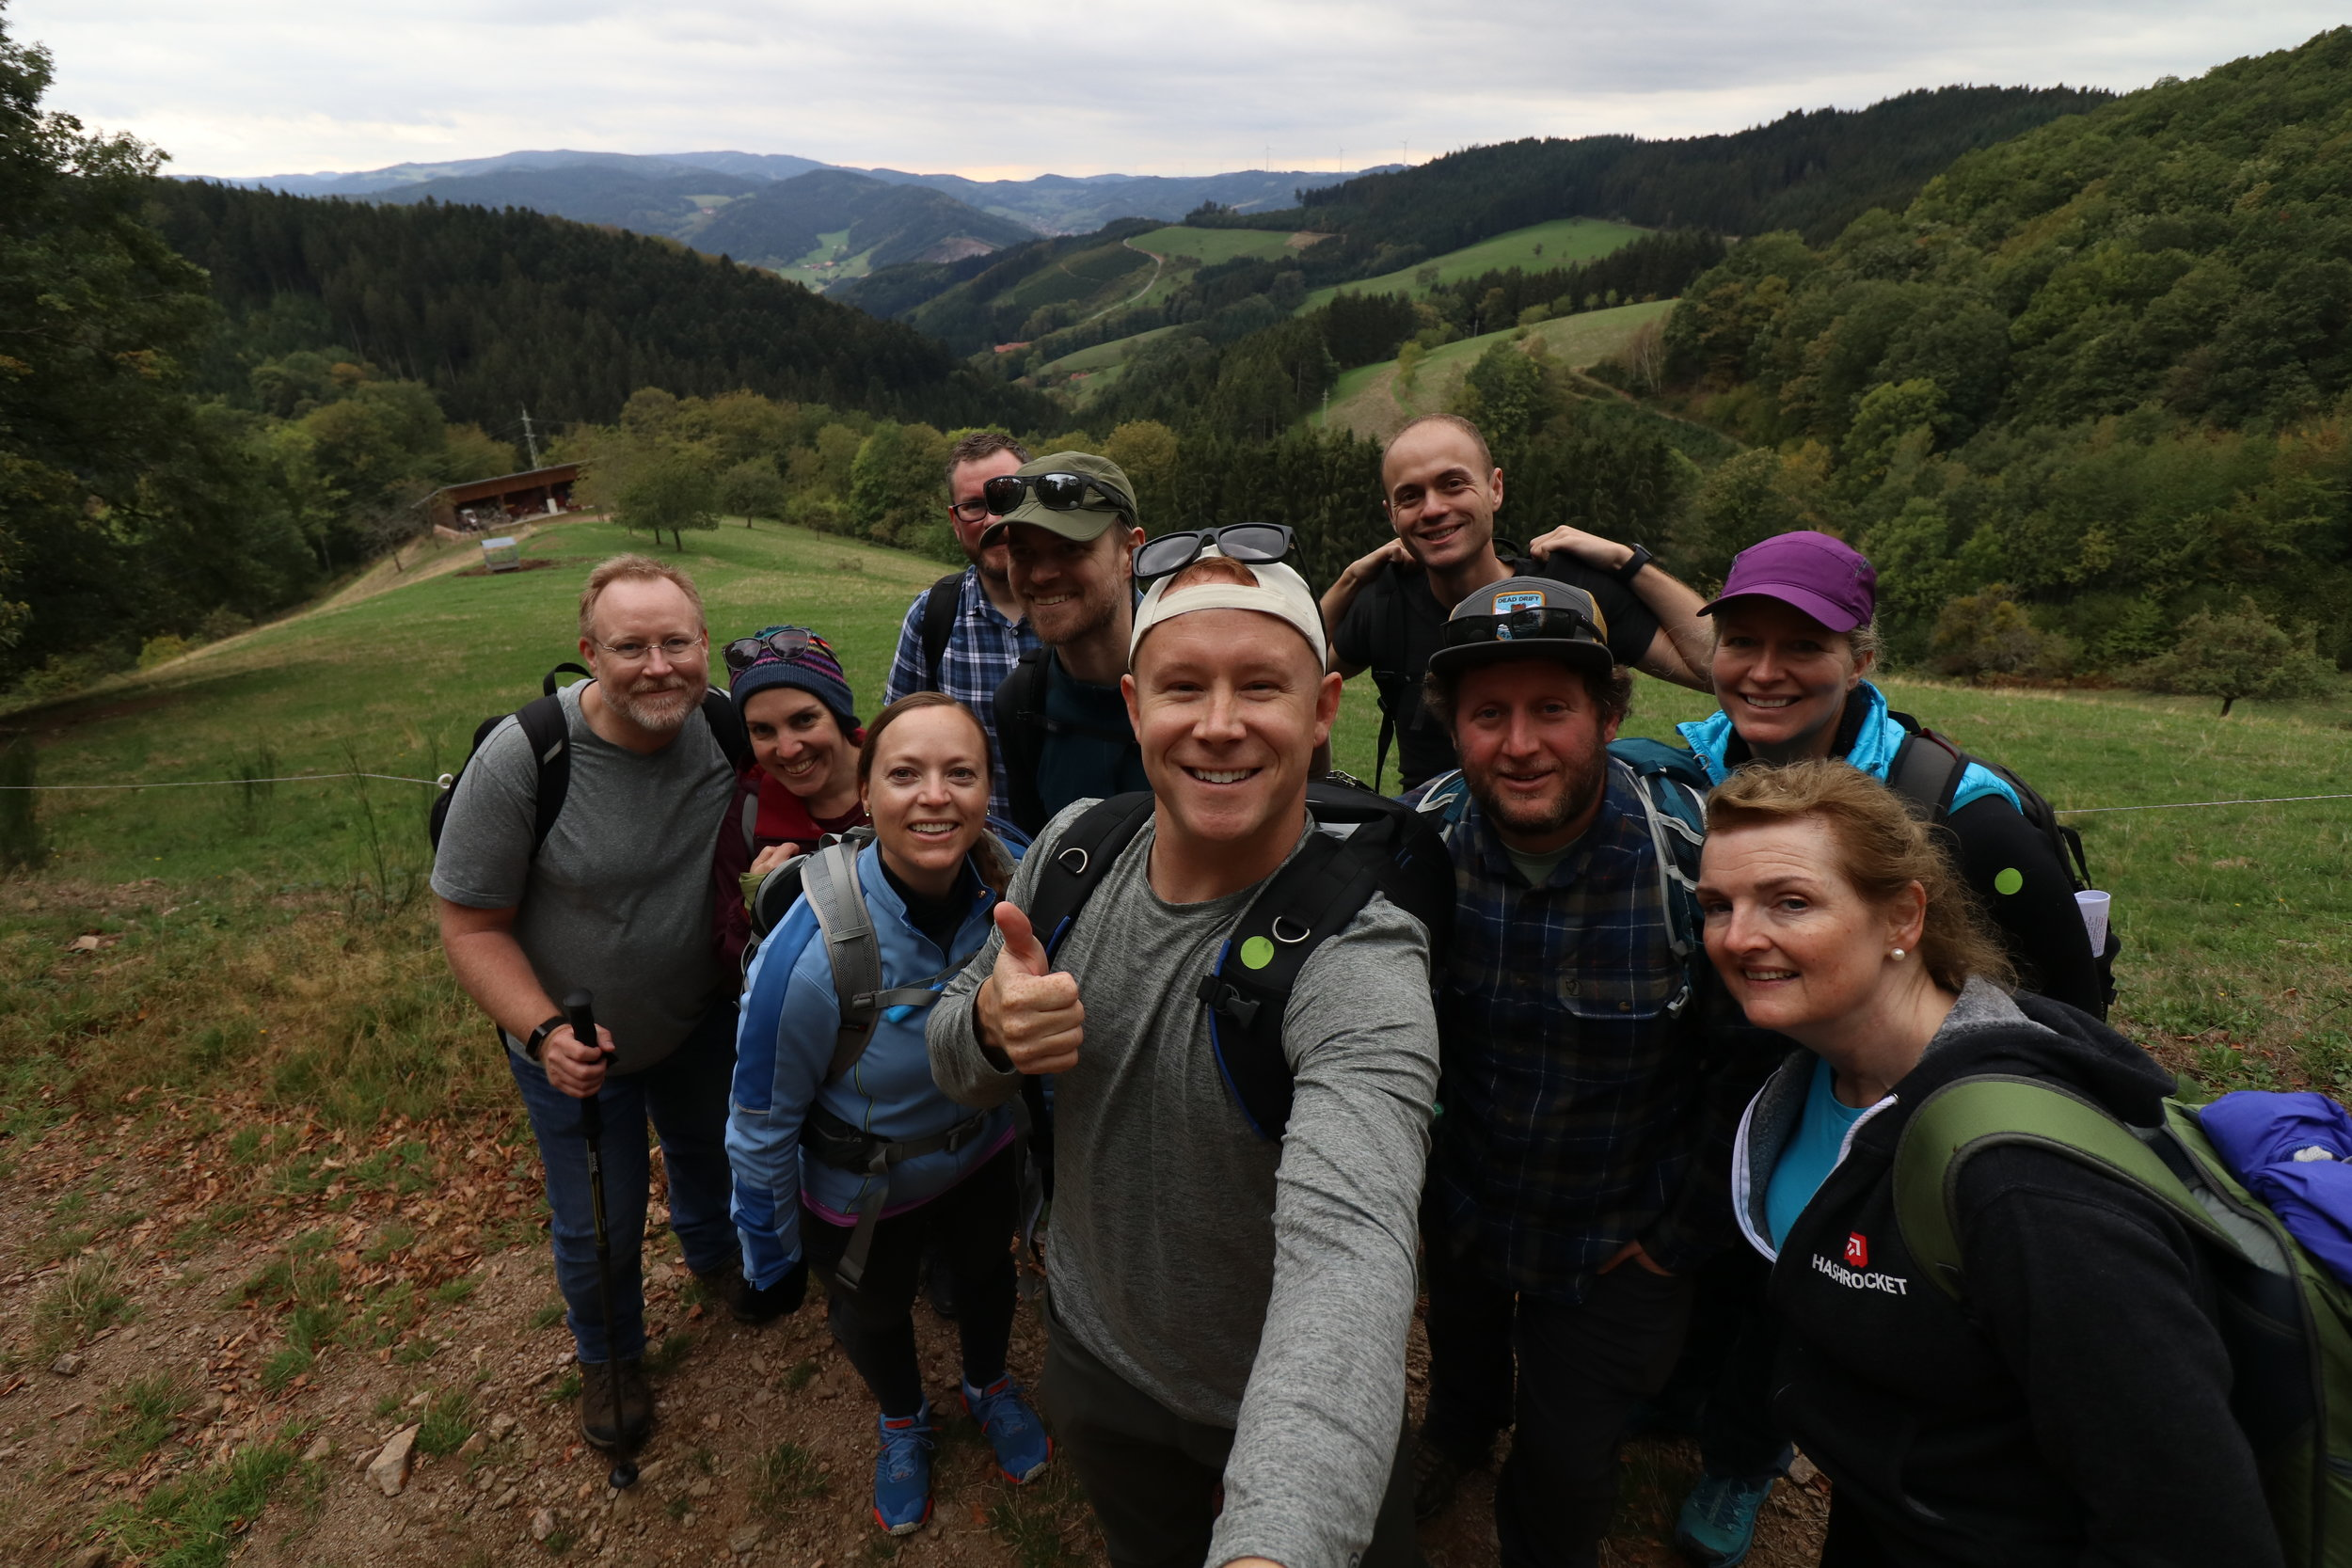 Once upon a time… - A fairytale-like Walkshop retreat through the Black Forest of Germany… right where Hansel and Gretel got lost.October 2018